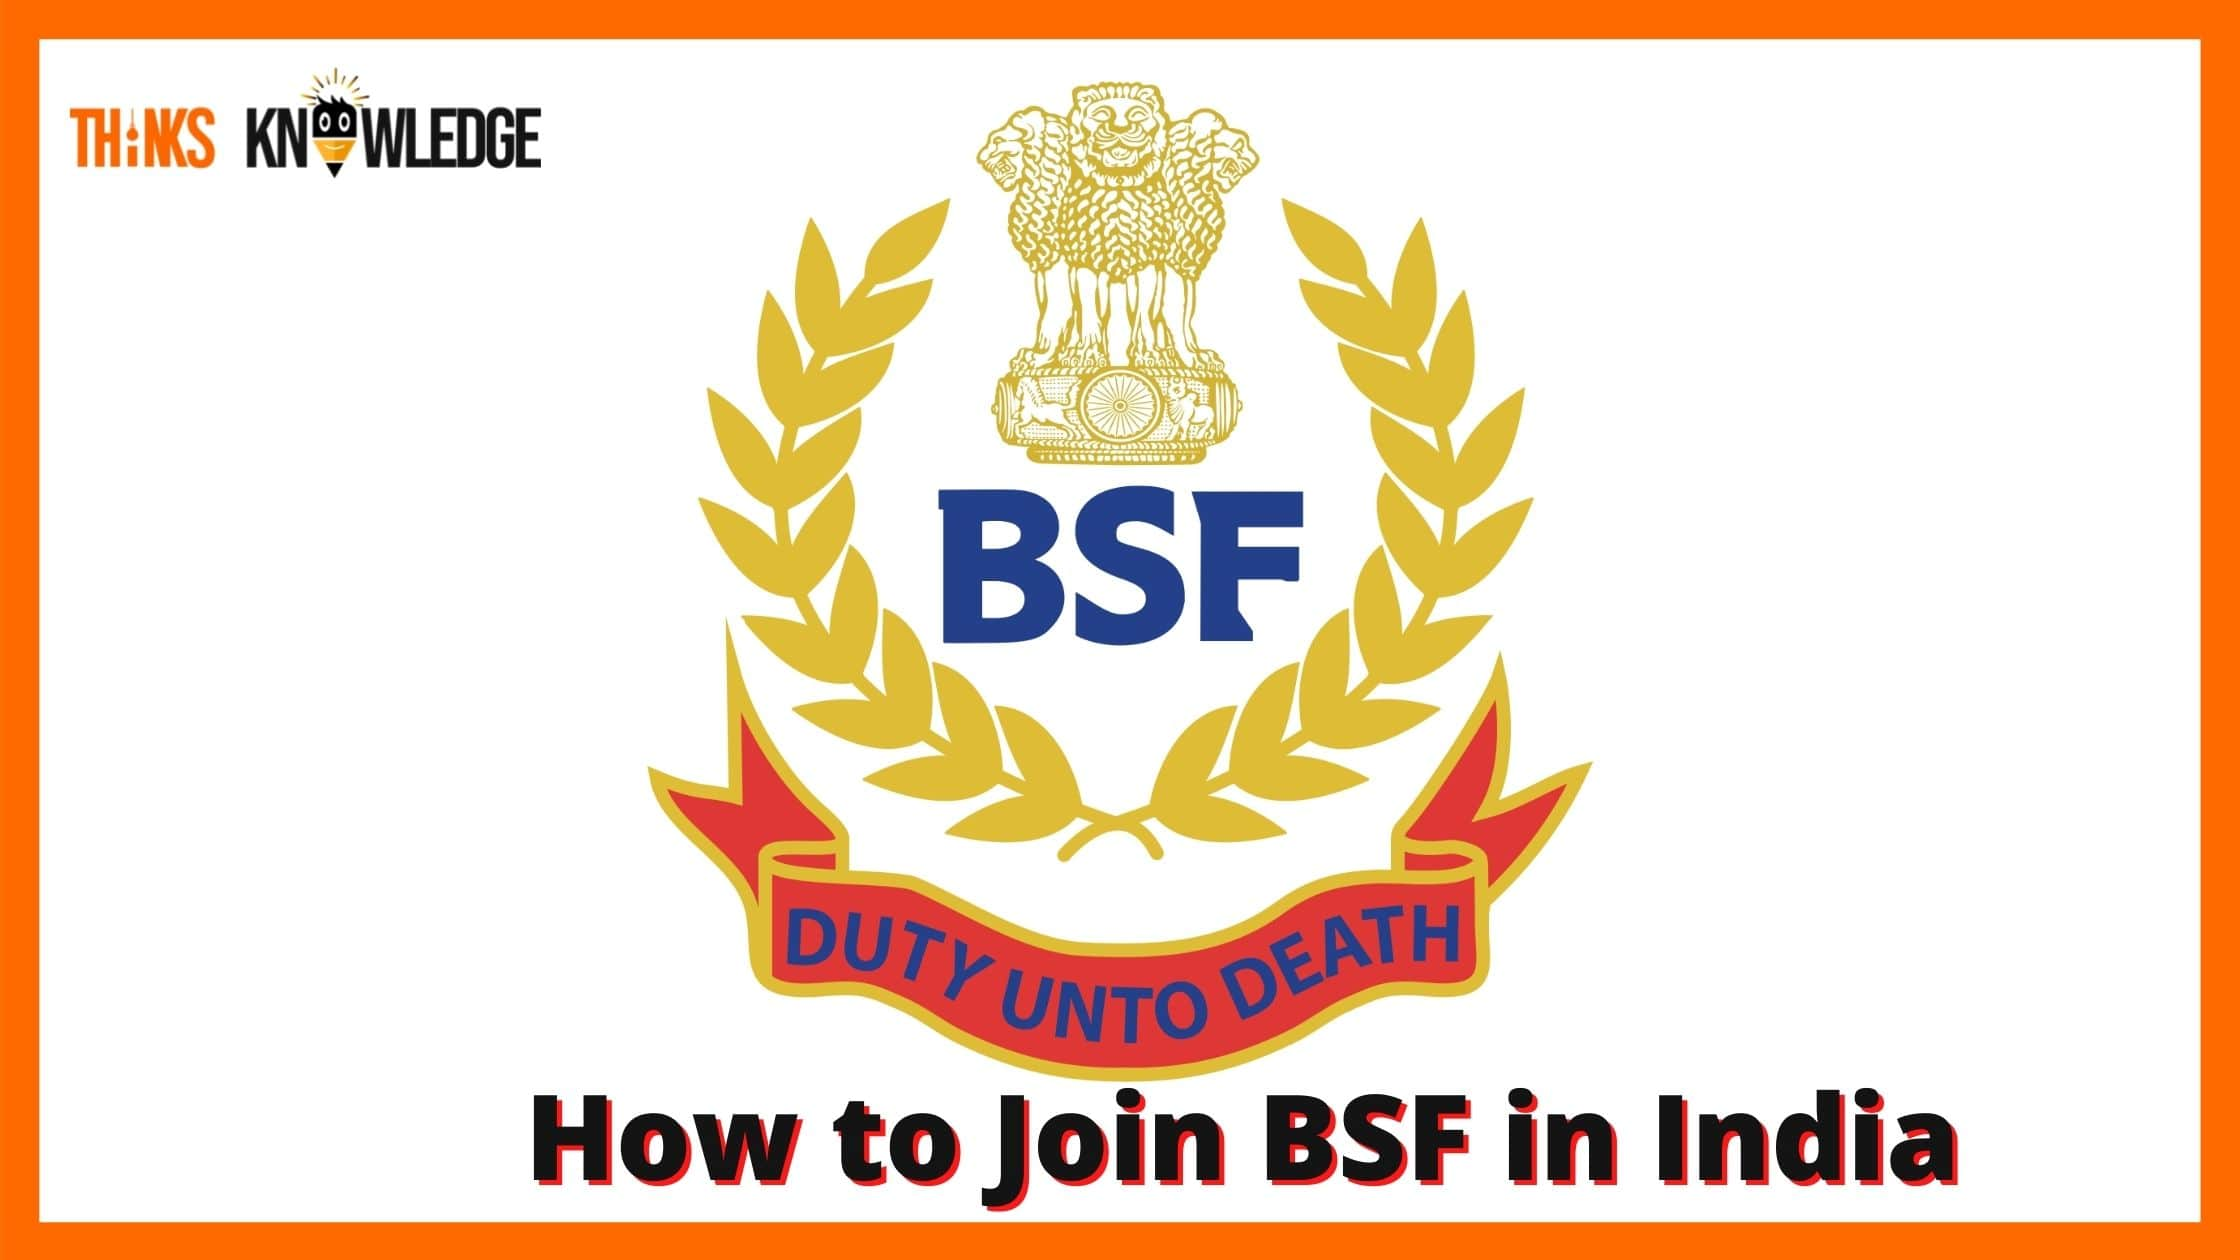 How to join BSF